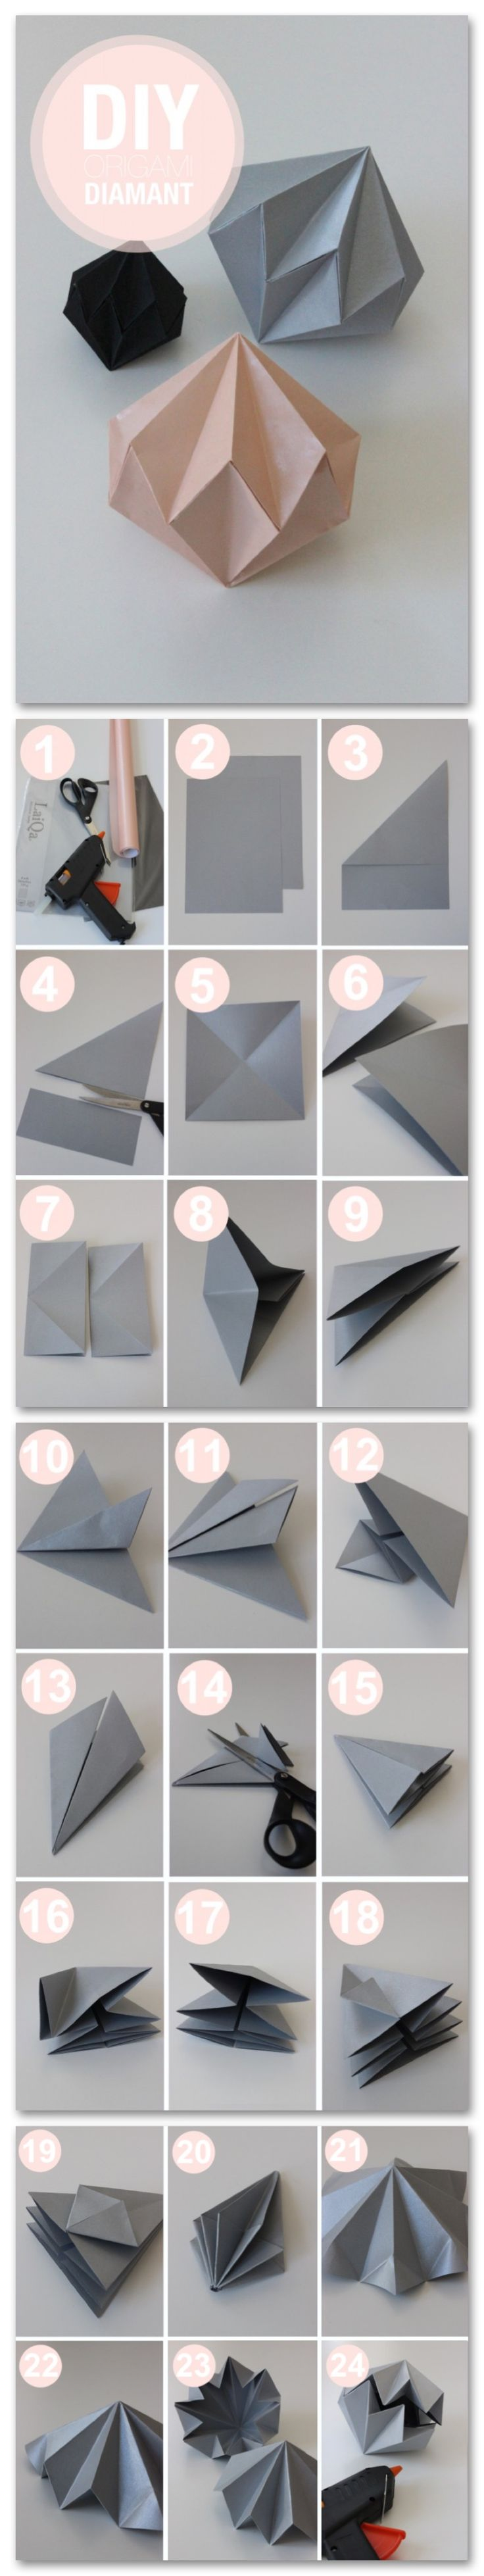 Origami Diamond Tutorial                                                                                                                                                                                 More